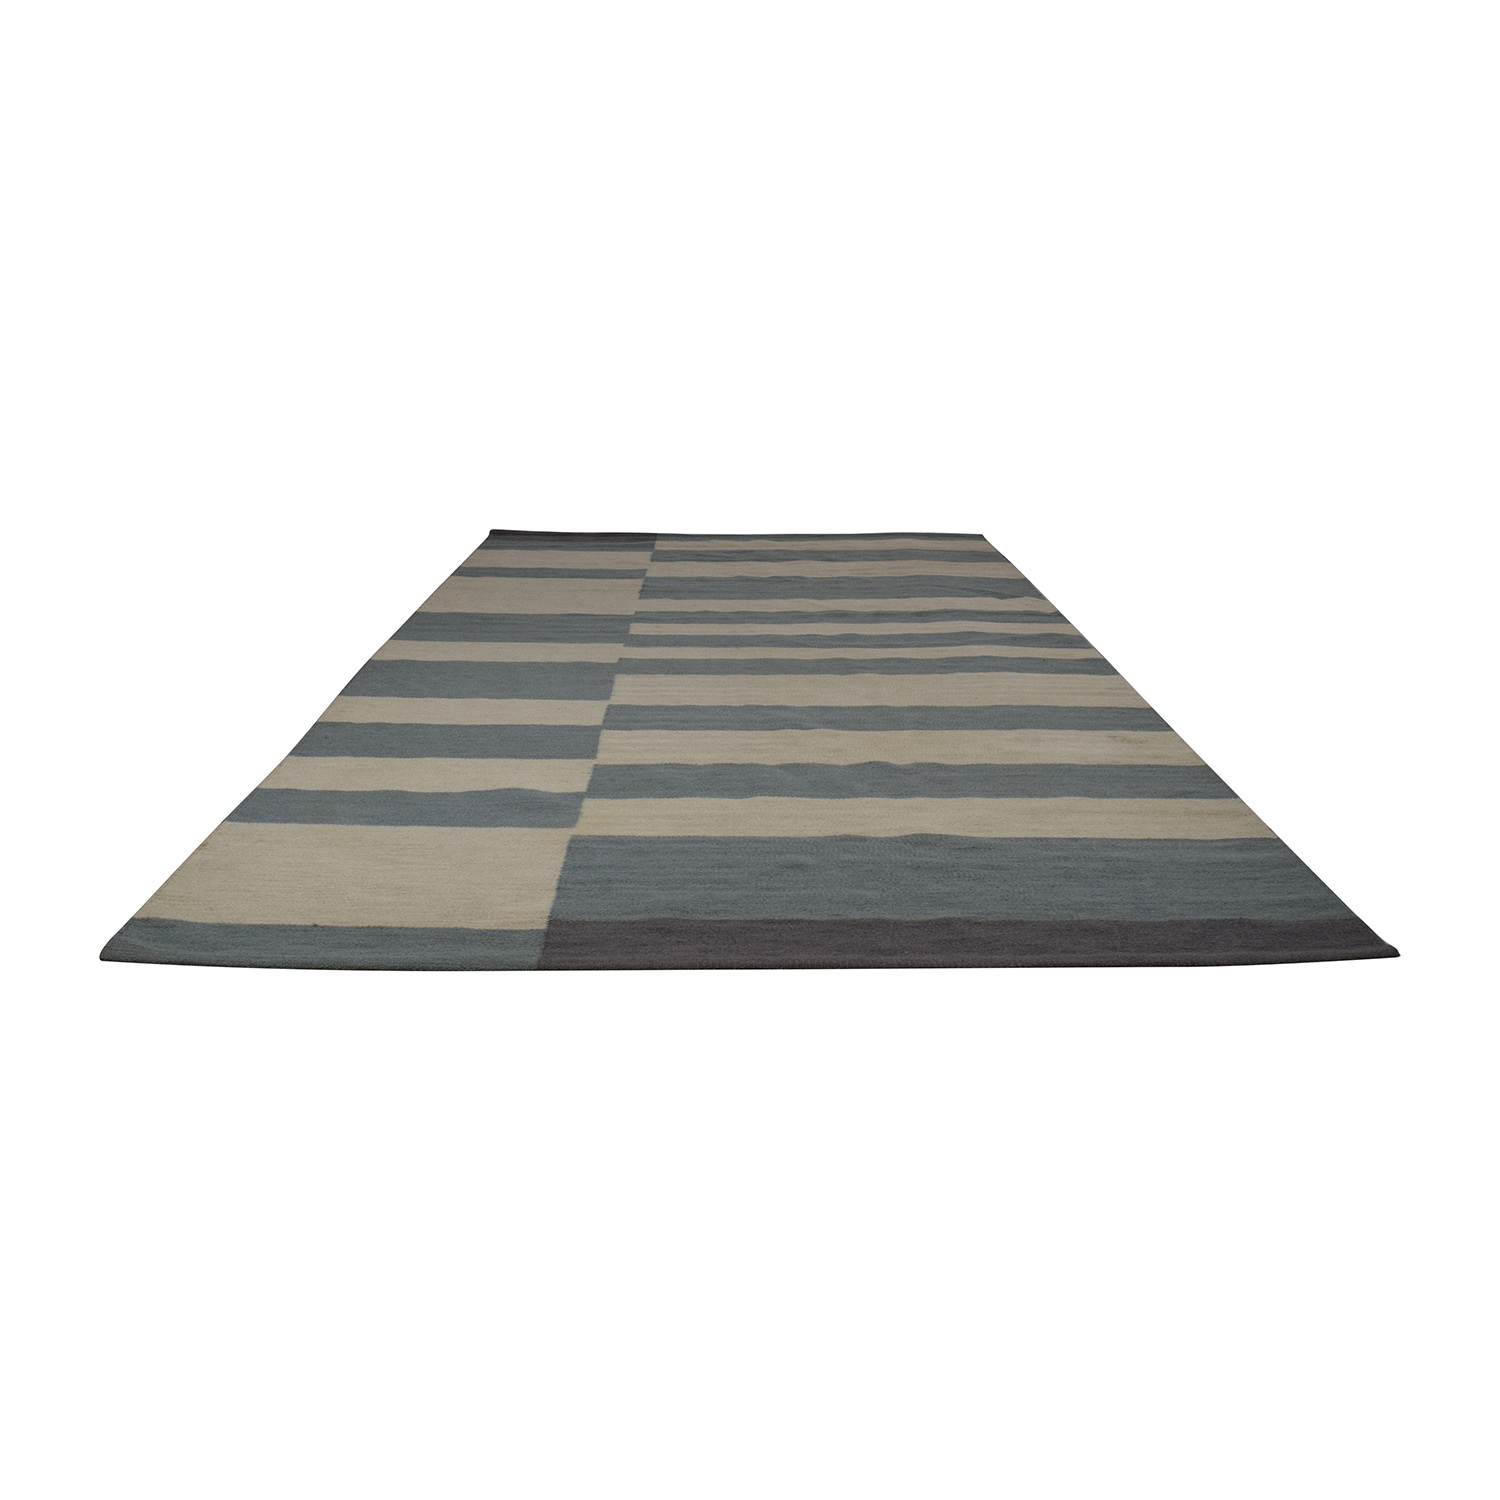 West Elm West Elm Striped Rug nyc